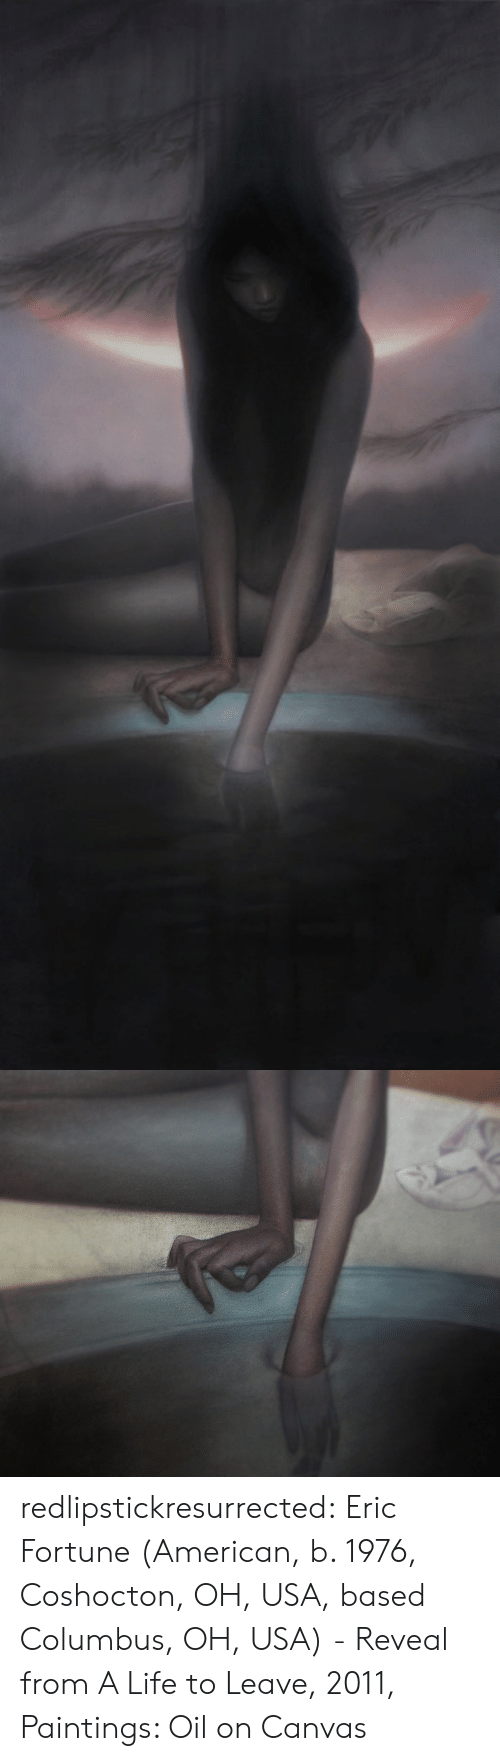 Life, Paintings, and Tumblr: redlipstickresurrected:  Eric Fortune (American, b. 1976, Coshocton, OH, USA, based Columbus, OH, USA) - Reveal from A Life to Leave, 2011, Paintings: Oil on Canvas